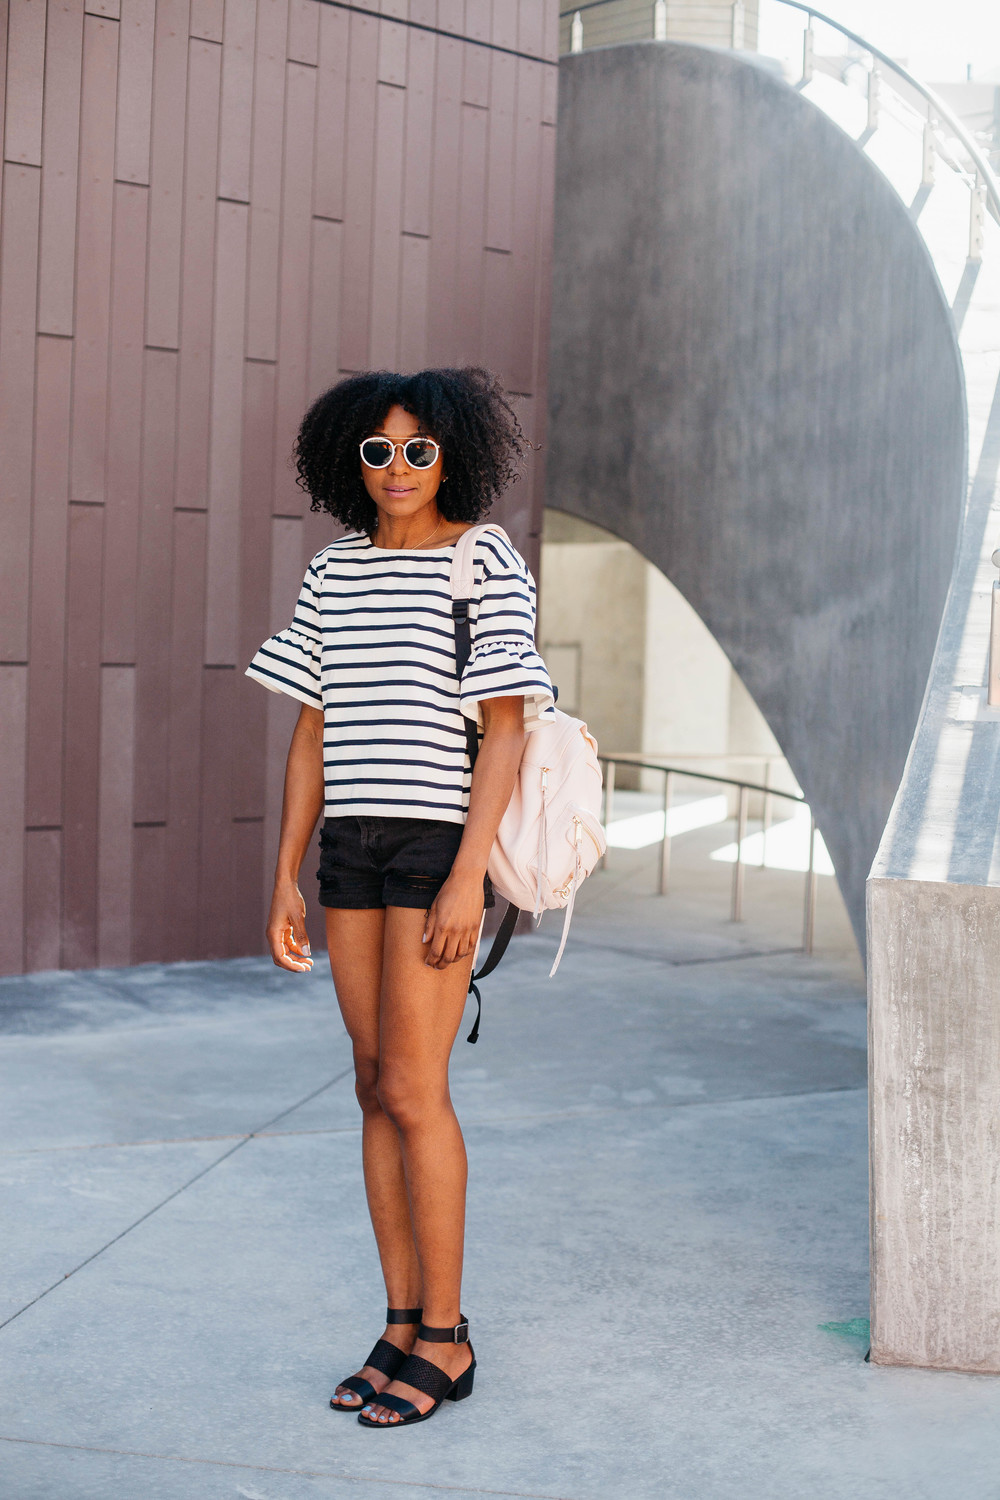 top: JCrew  denim shorts: Forever 21   Sandals: Madewell